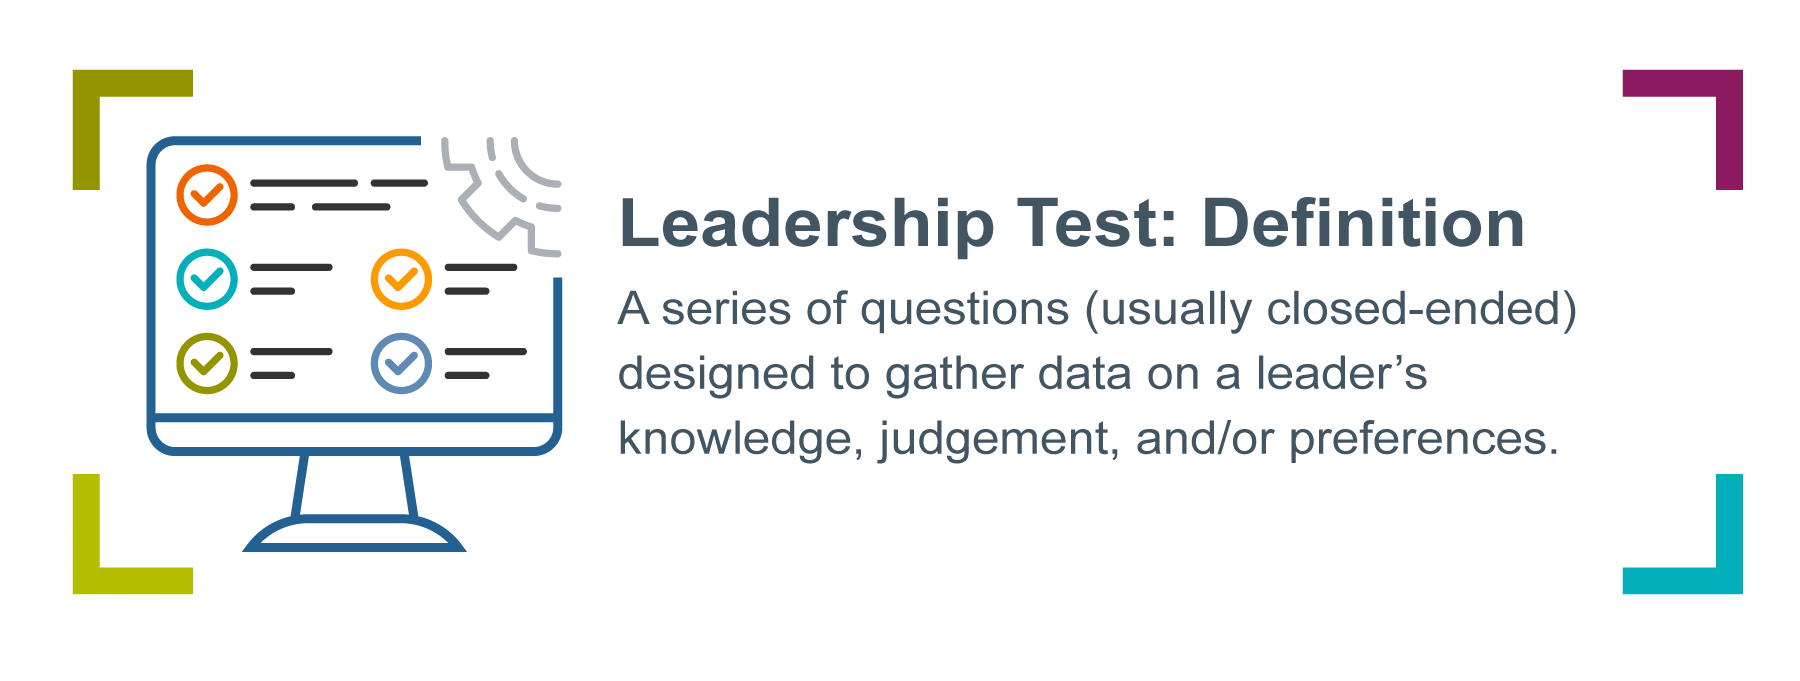 Graphic of a computer with checkmarks, accompanied by the definition of a leadership test. The definition says